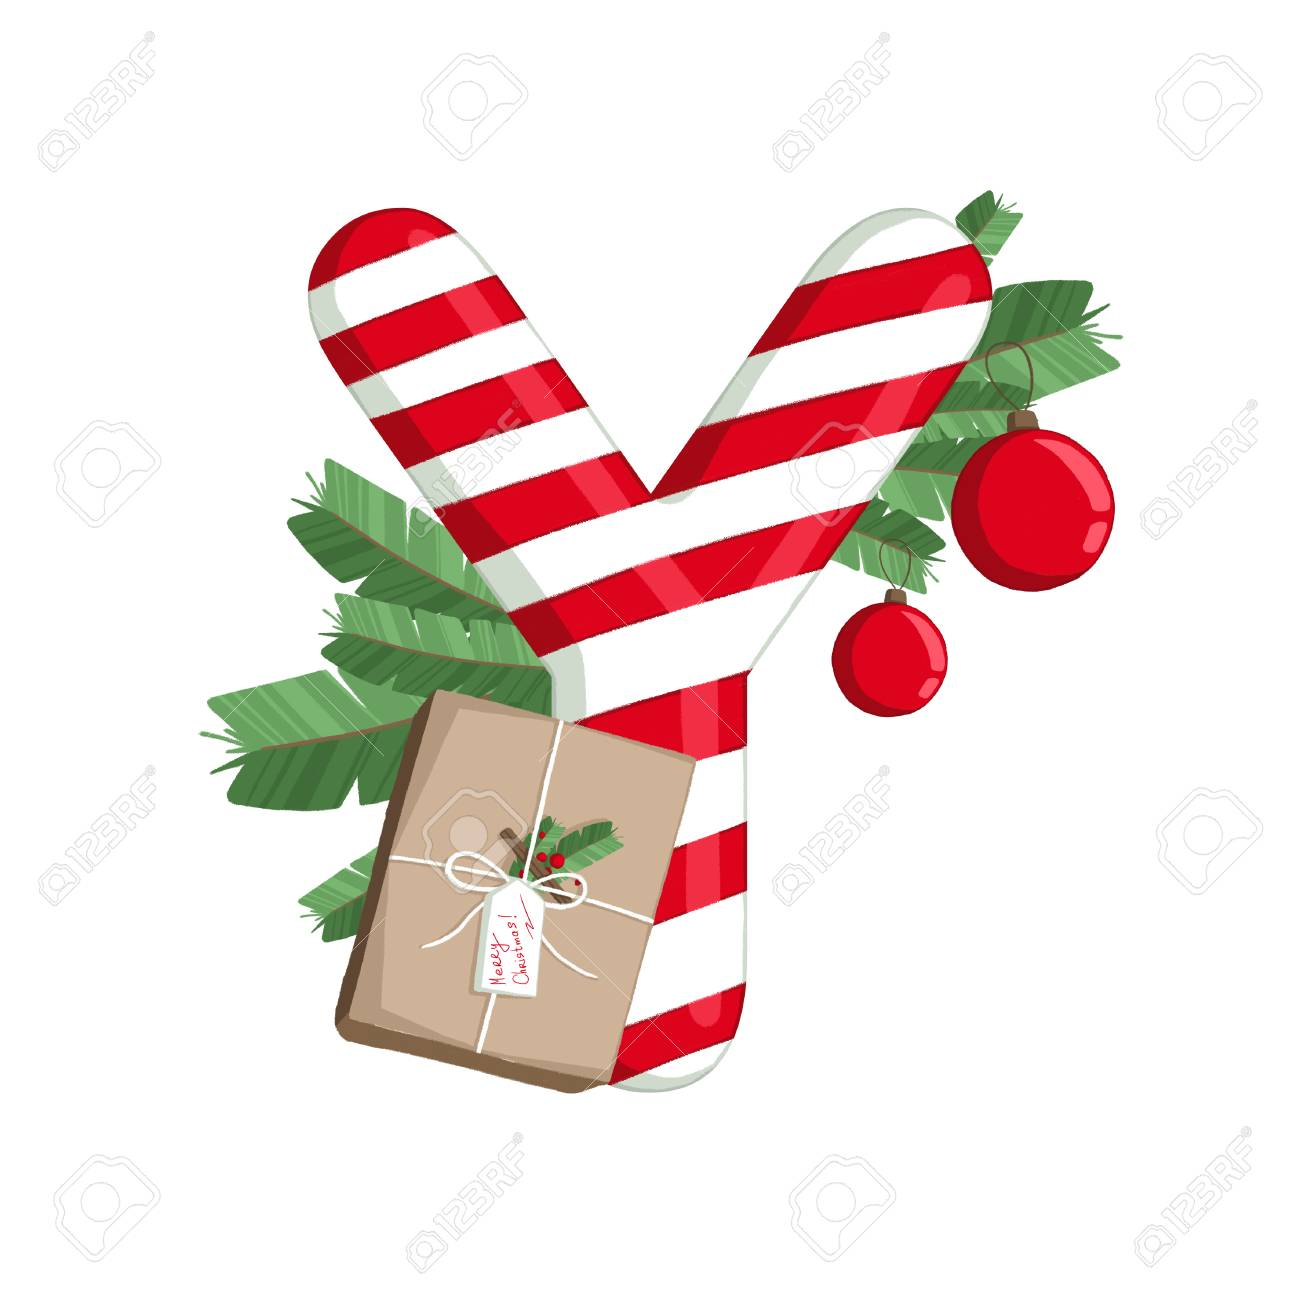 Merry Christmas Letter T.Stock Illustration